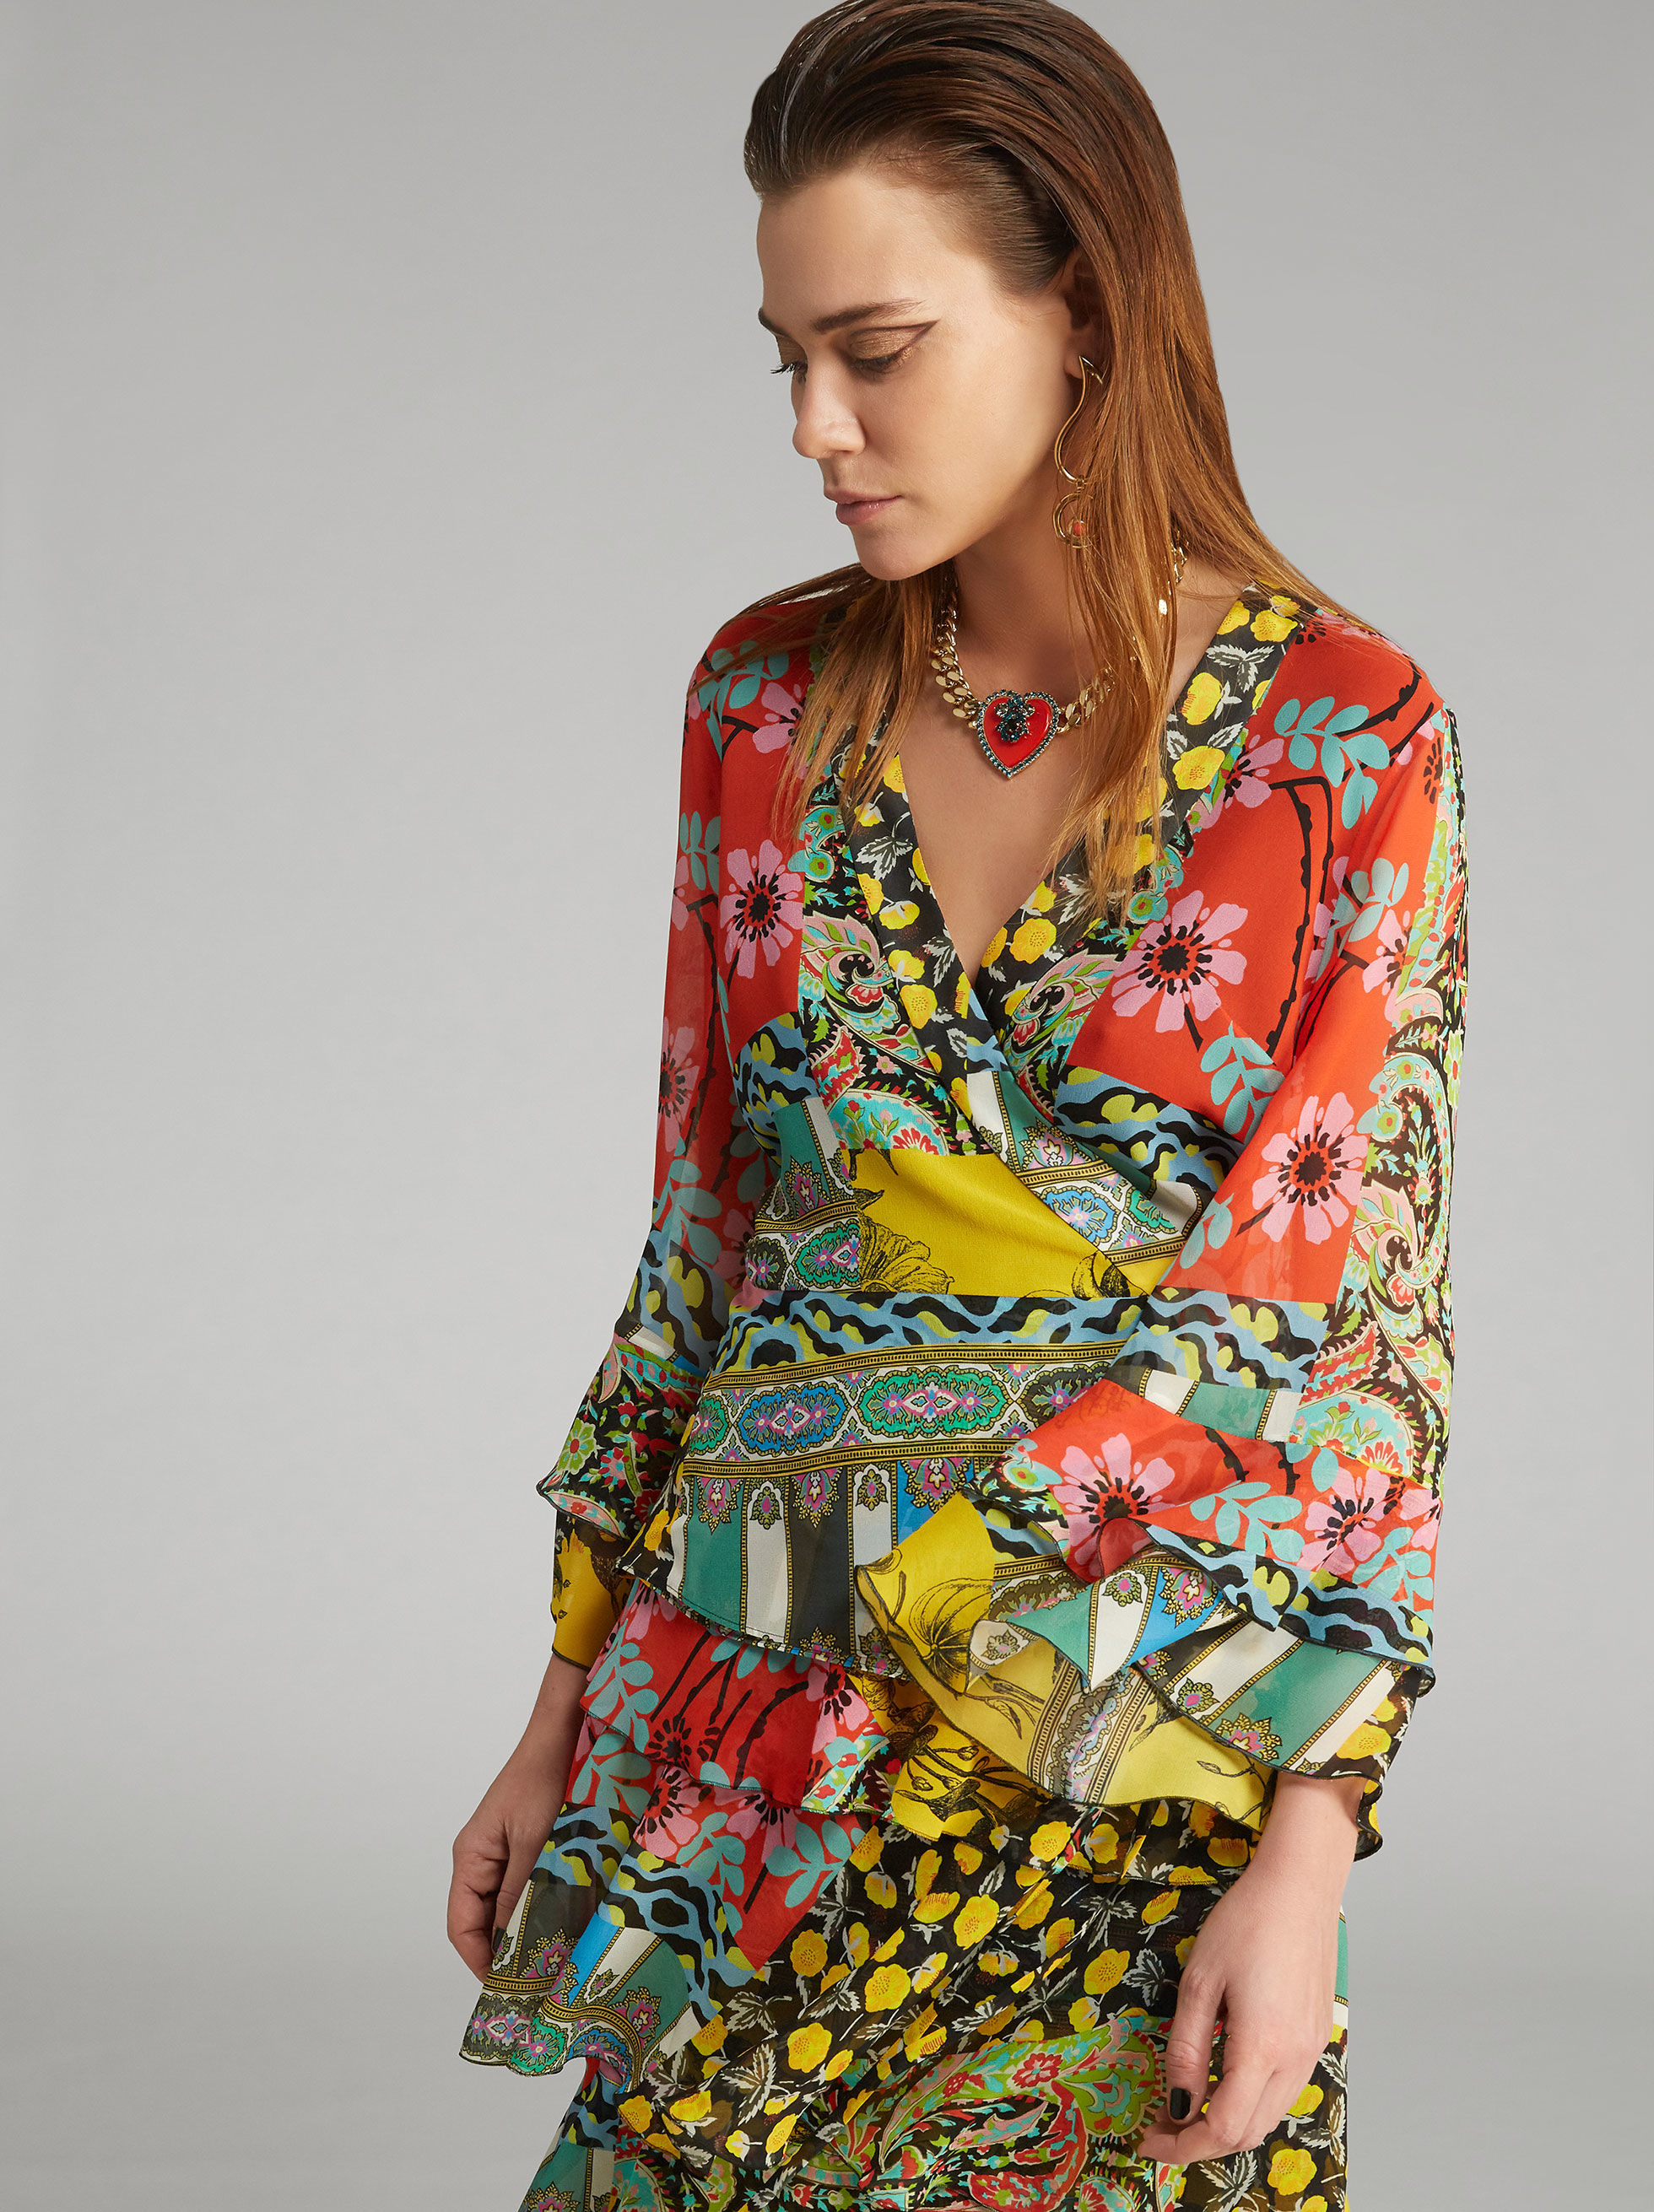 SILK PATCHWORK-PRINT TOP WITH RUFFLES